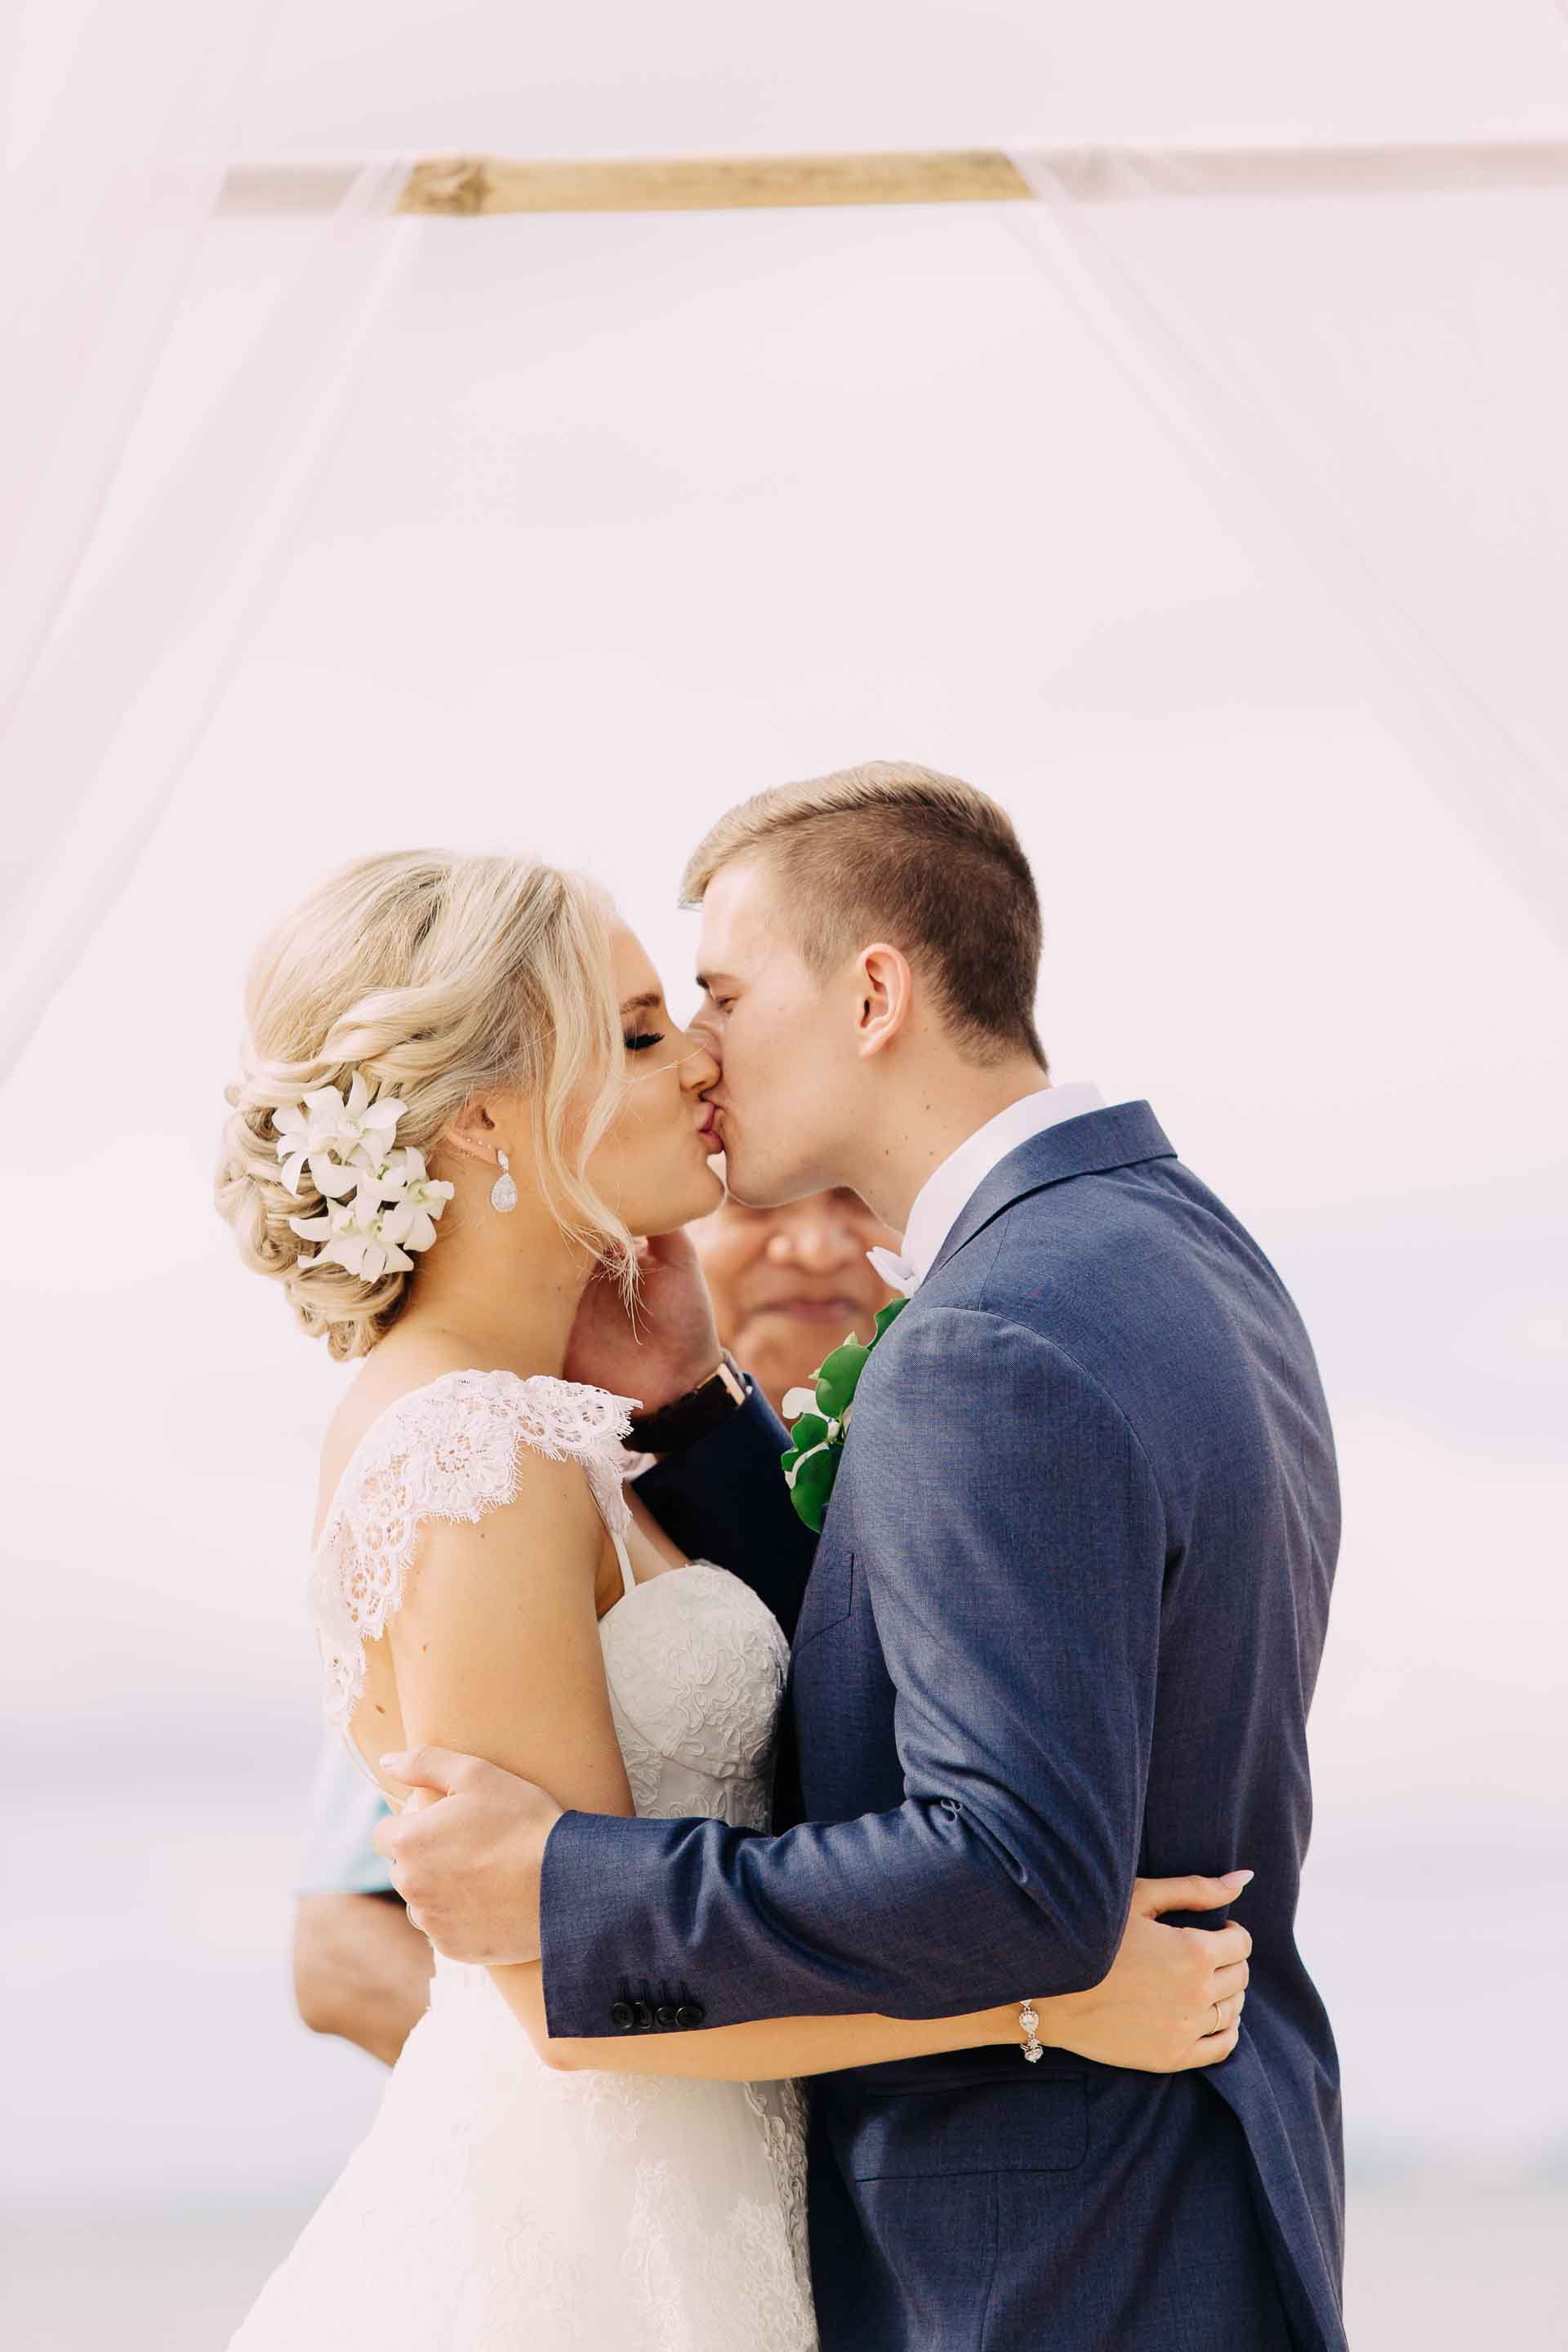 The happy bride and groom have their First Kiss as husband and wife.